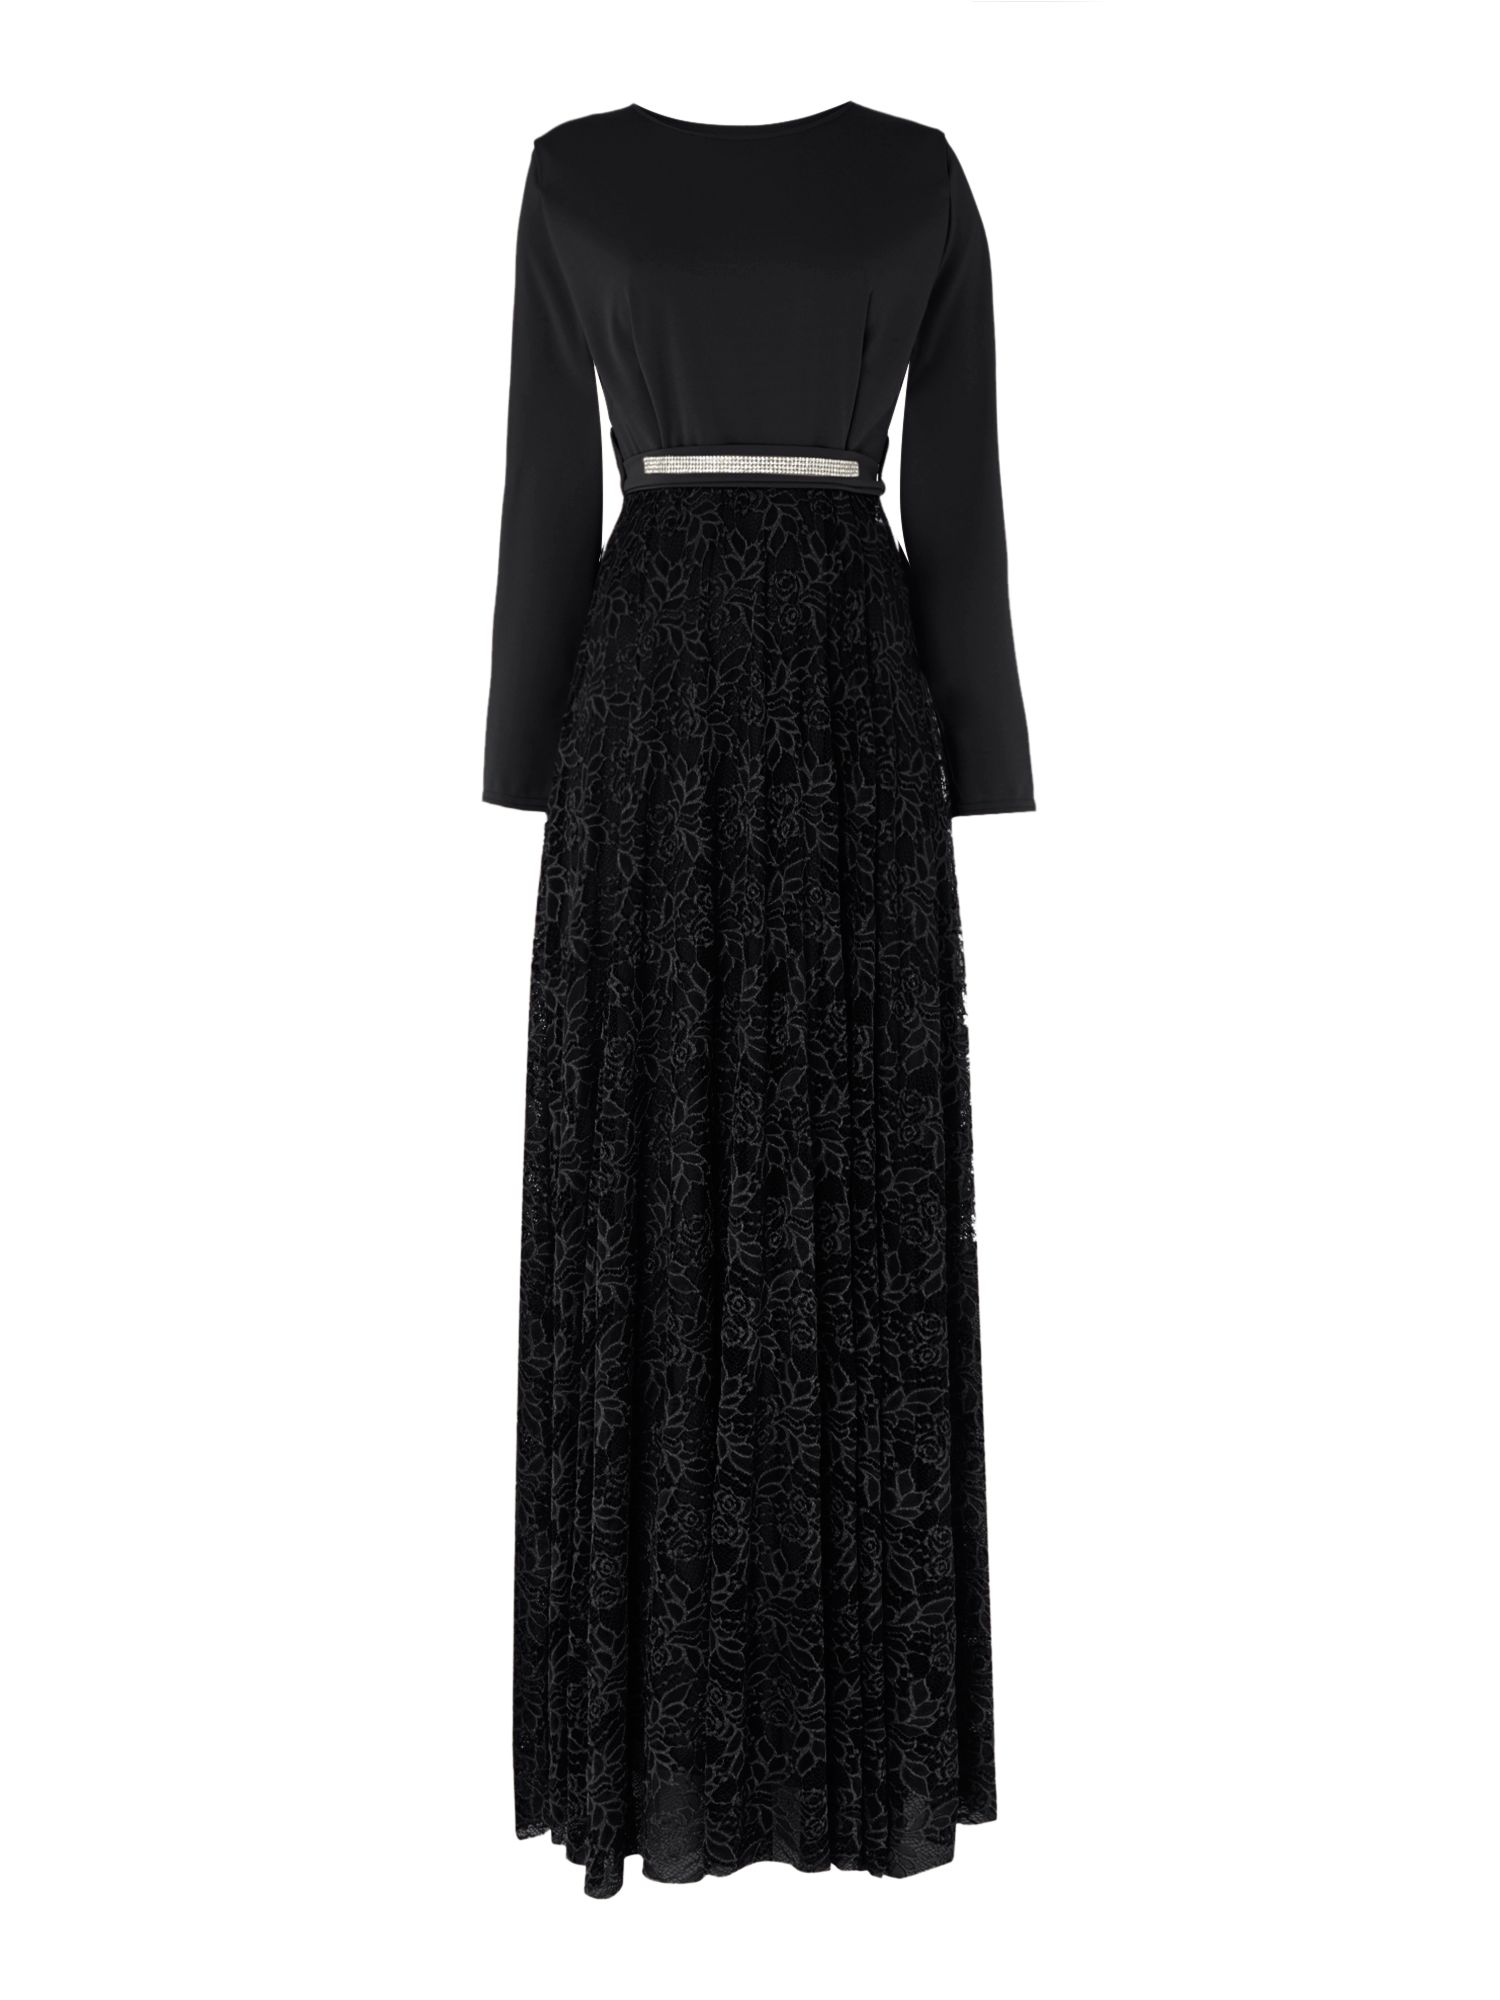 Shorso Diamante Lace Maxi Dress, Black